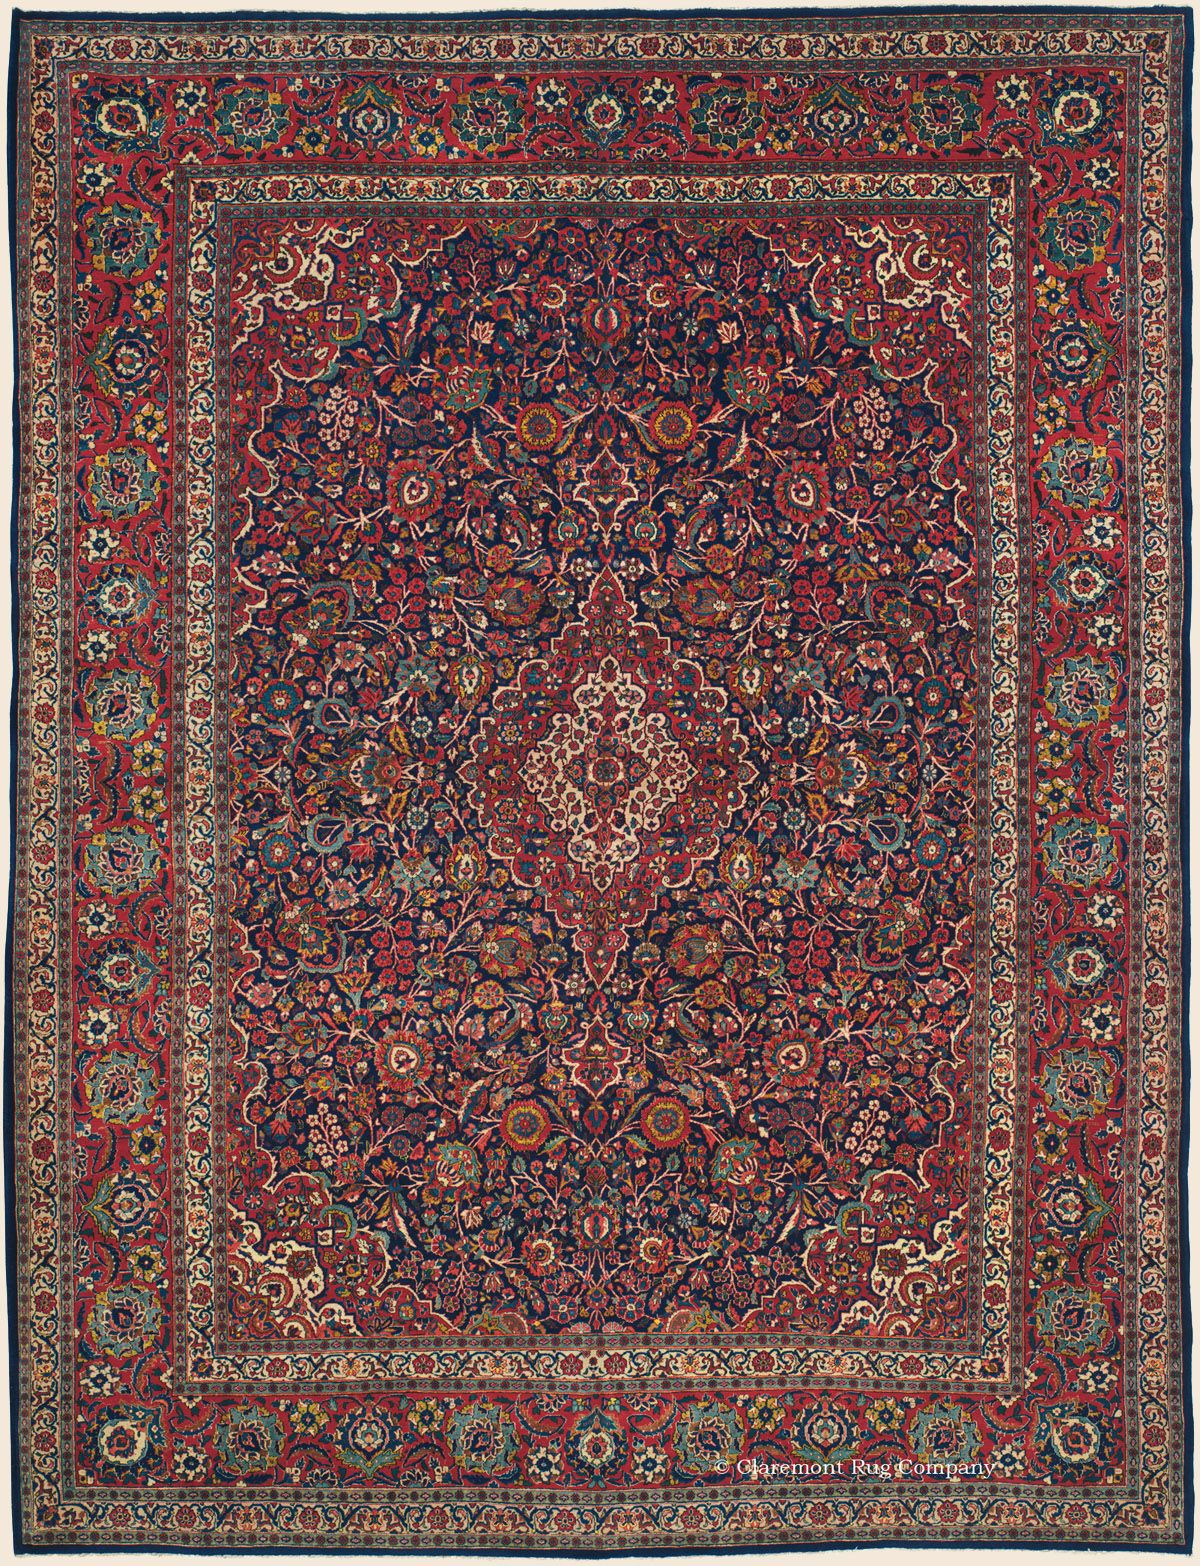 Sorry This Rug Is No Longer Available Claremont Rug Company Claremont Rug Company Persian Rug Designs Antique Persian Carpet